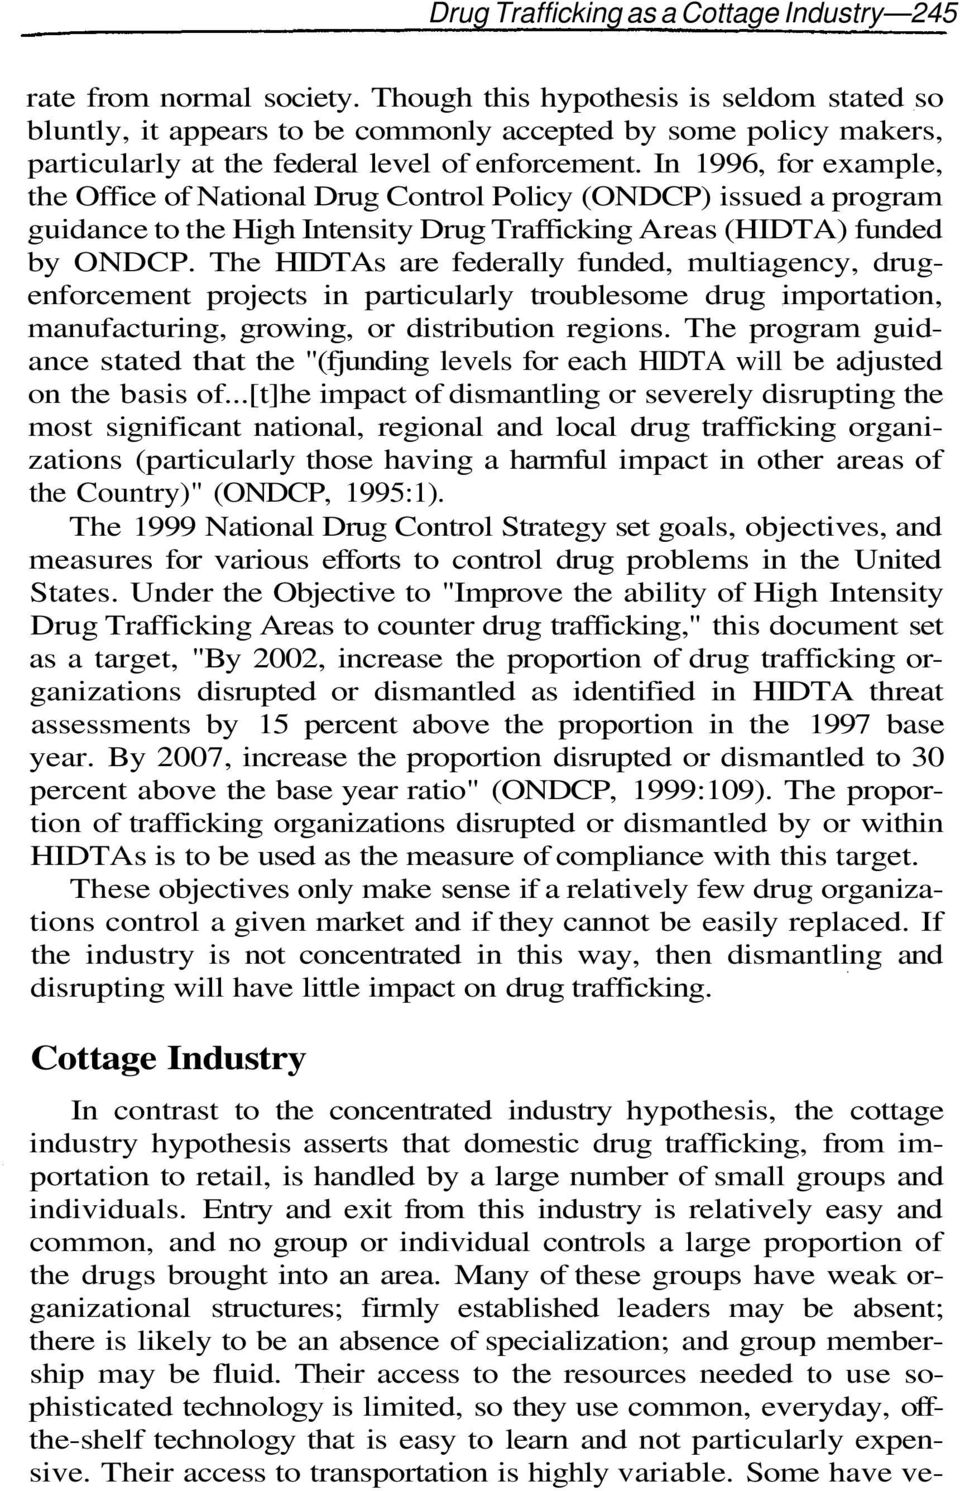 In 1996, for example, the Office of National Drug Control Policy (ONDCP) issued a program guidance to the High Intensity Drug Trafficking Areas (HIDTA) funded by ONDCP.